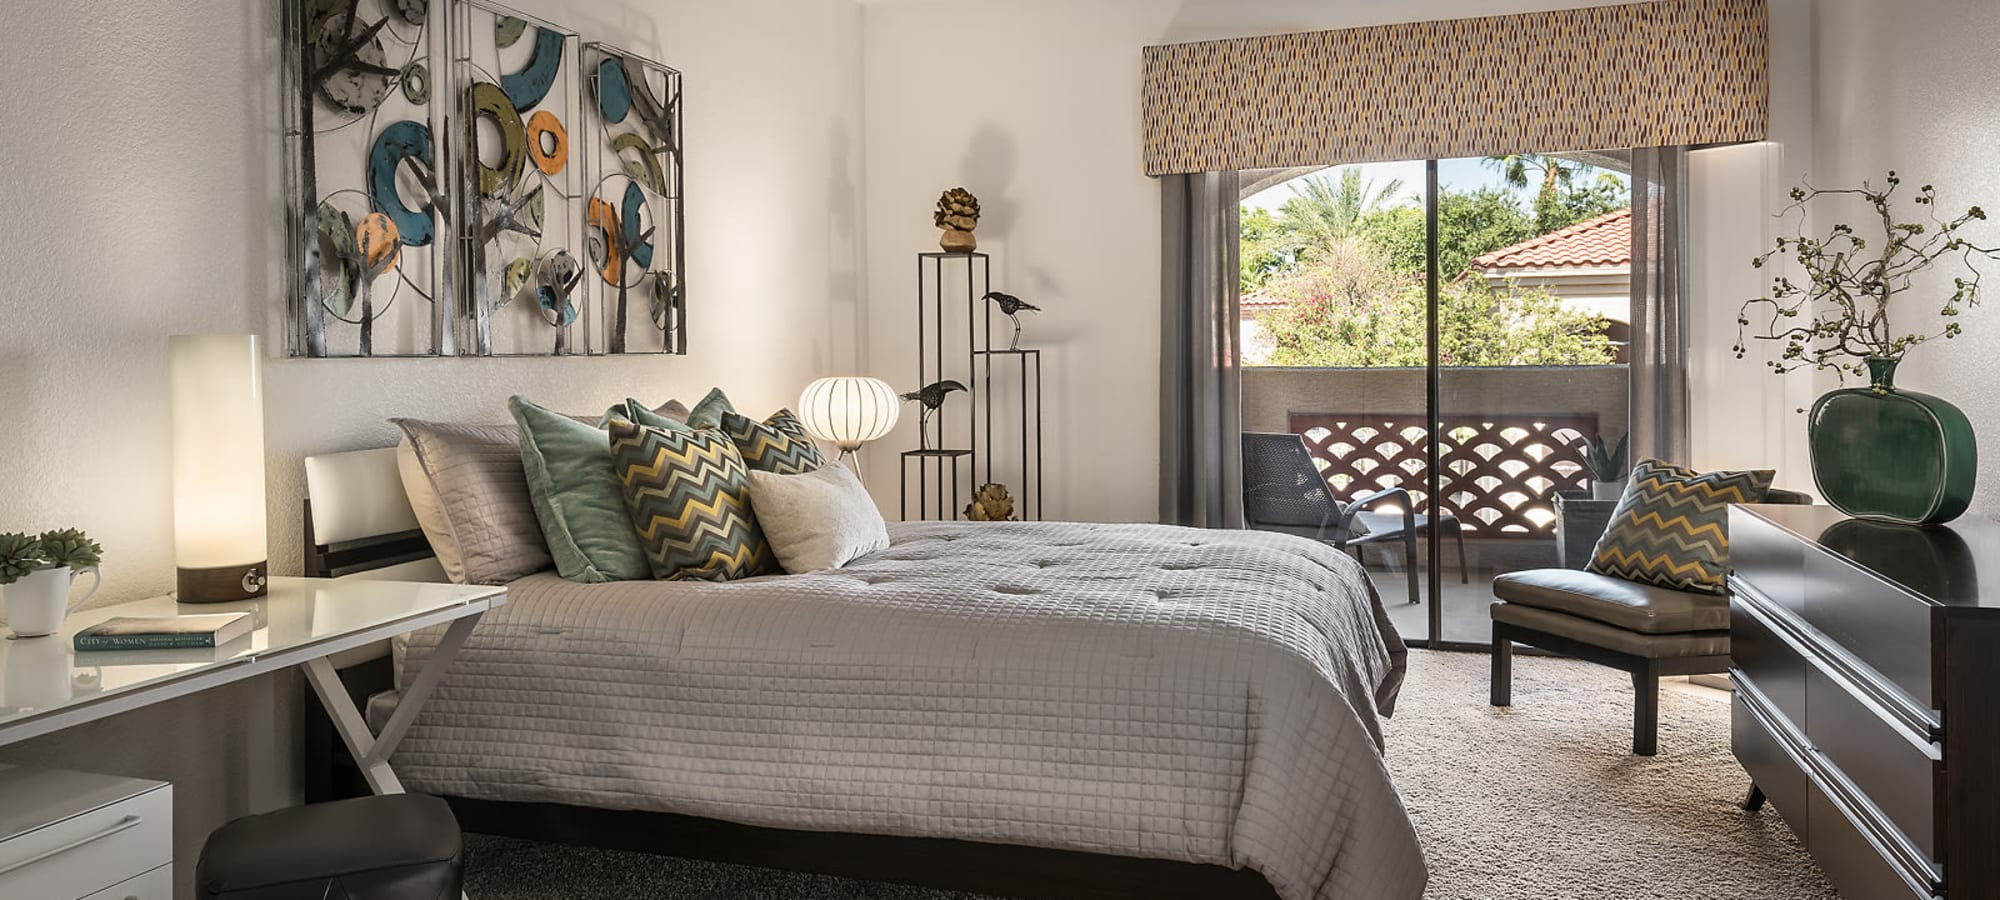 Spacious Master bedroom with furniture at San Lagos in Glendale, Arizona